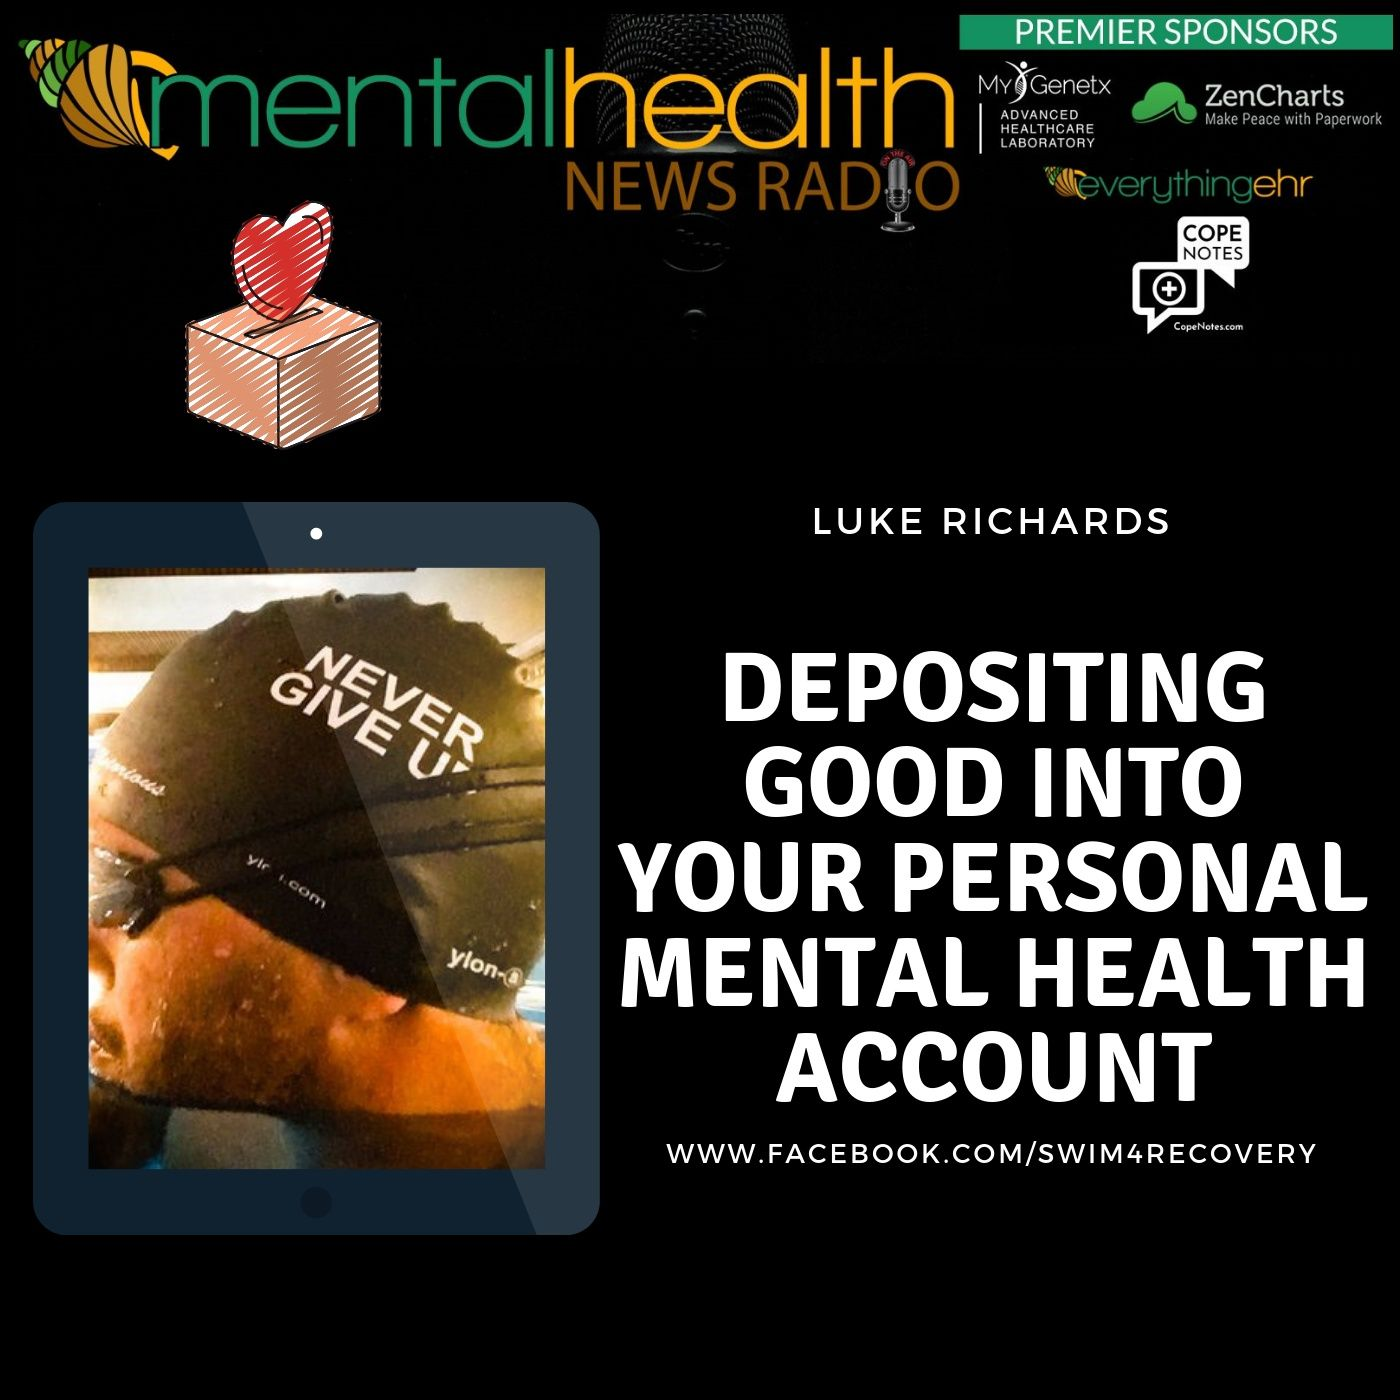 Mental Health News Radio - Depositing Good Into Your Personal Mental Health Account with Luke Richards